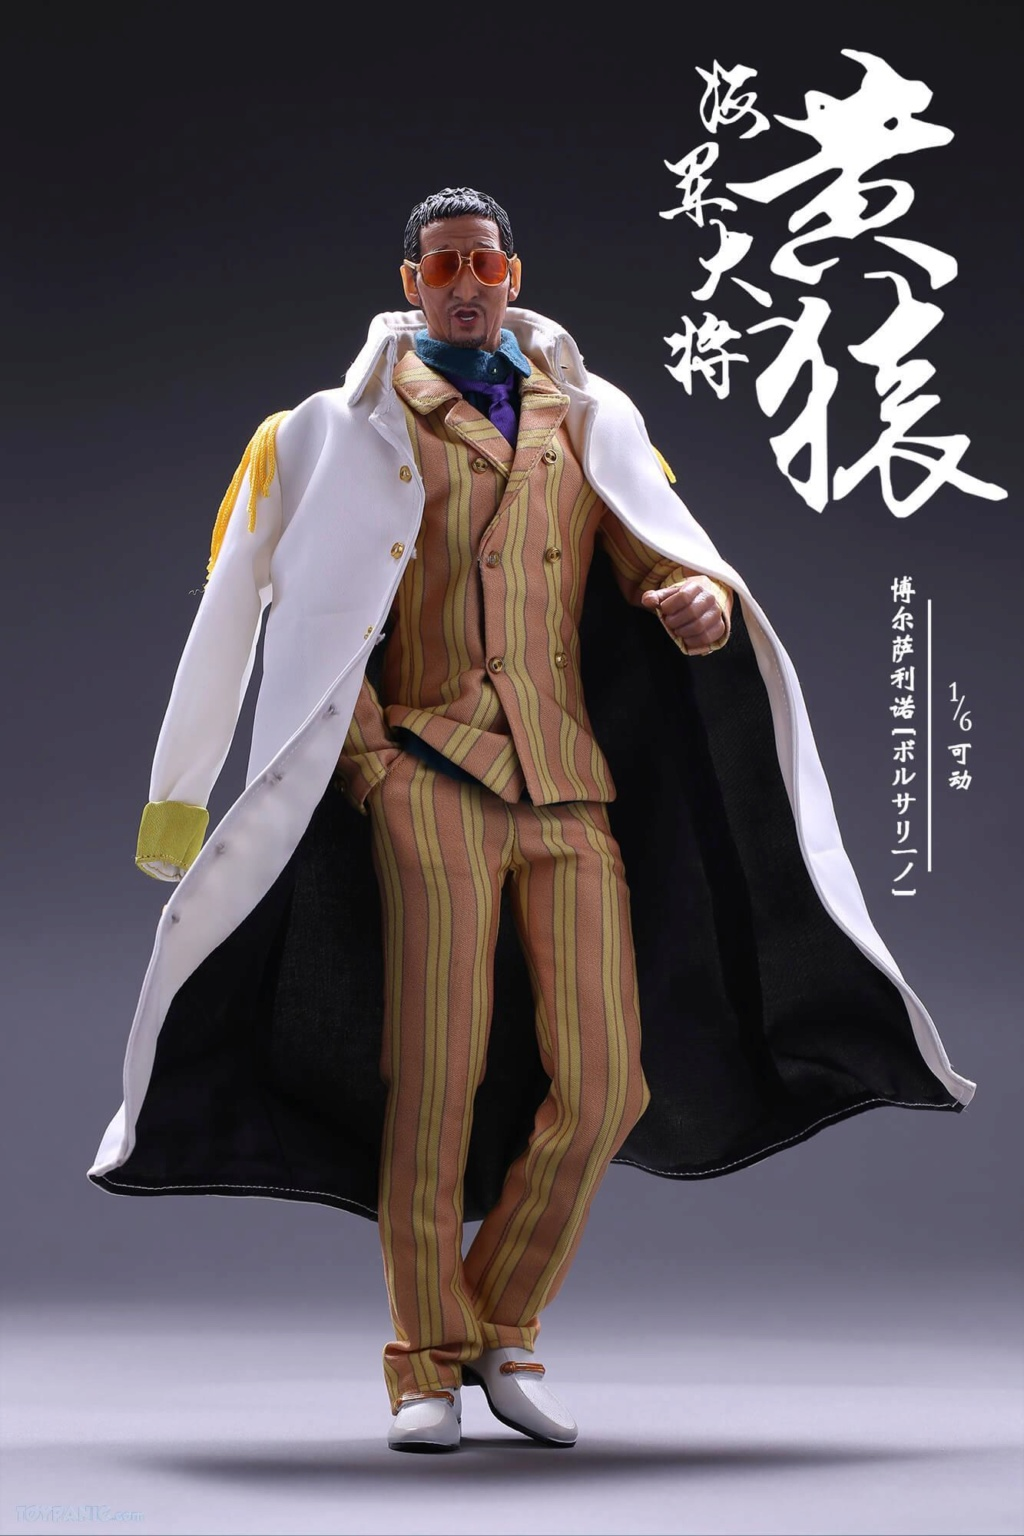 JokerToys - NEW PRODUCT: 1/6 Scale One Piece - Borsalino (Kizaru Yellow Monkey)  From JOKER TOYS  Code: JOK1810201801 10192040